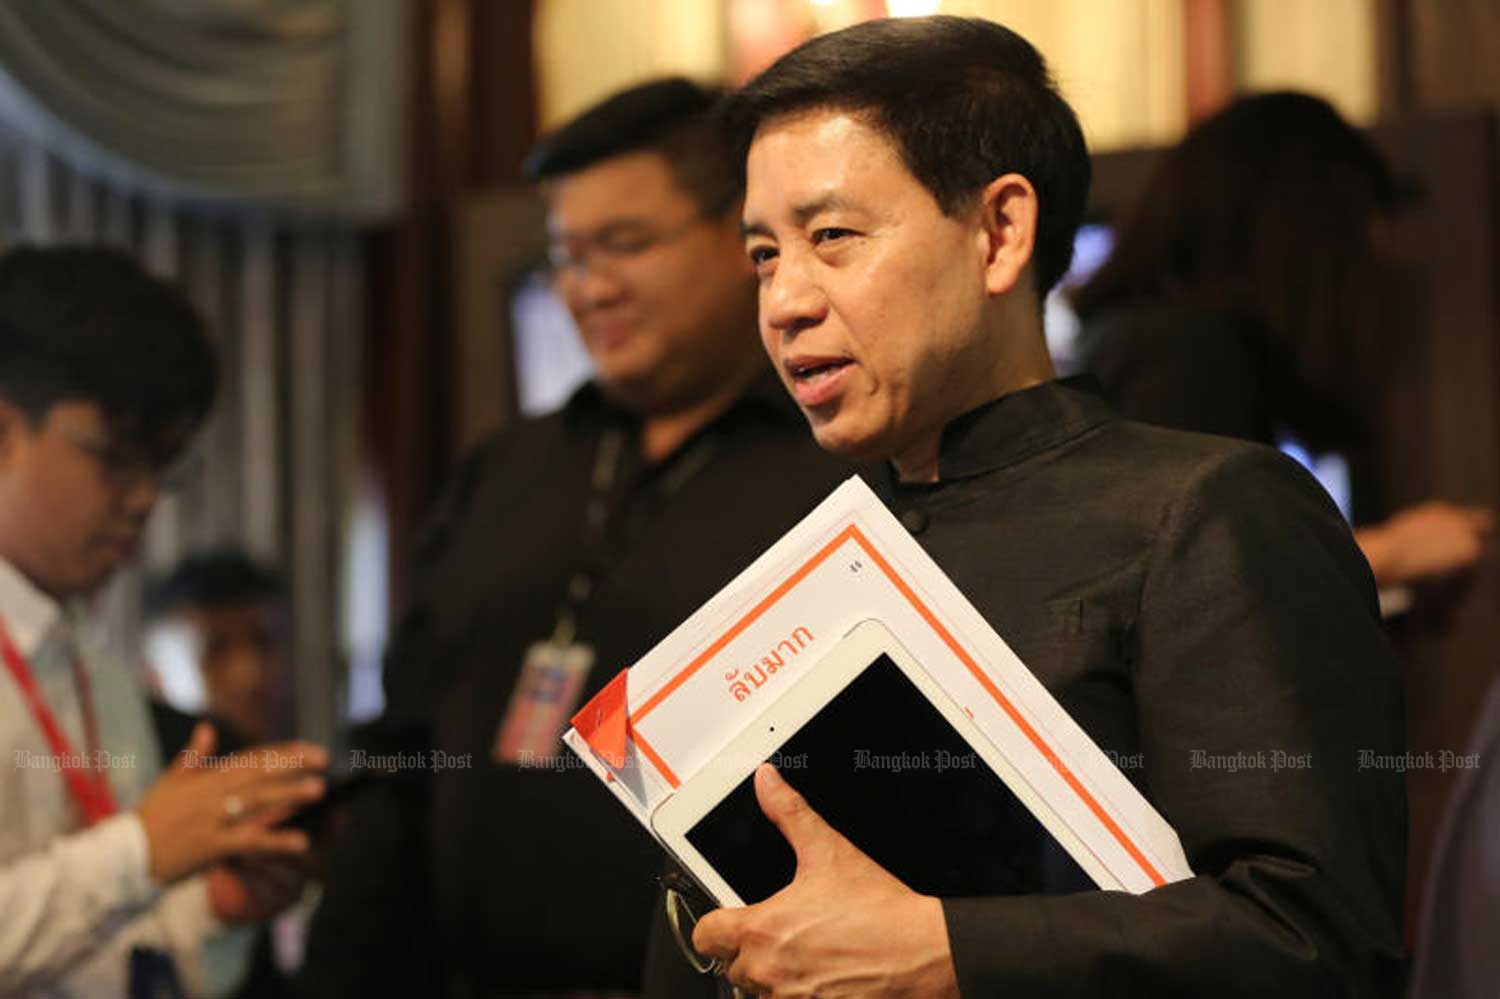 Sansern Kaewkamnerd, director-general of the Public Relations Department